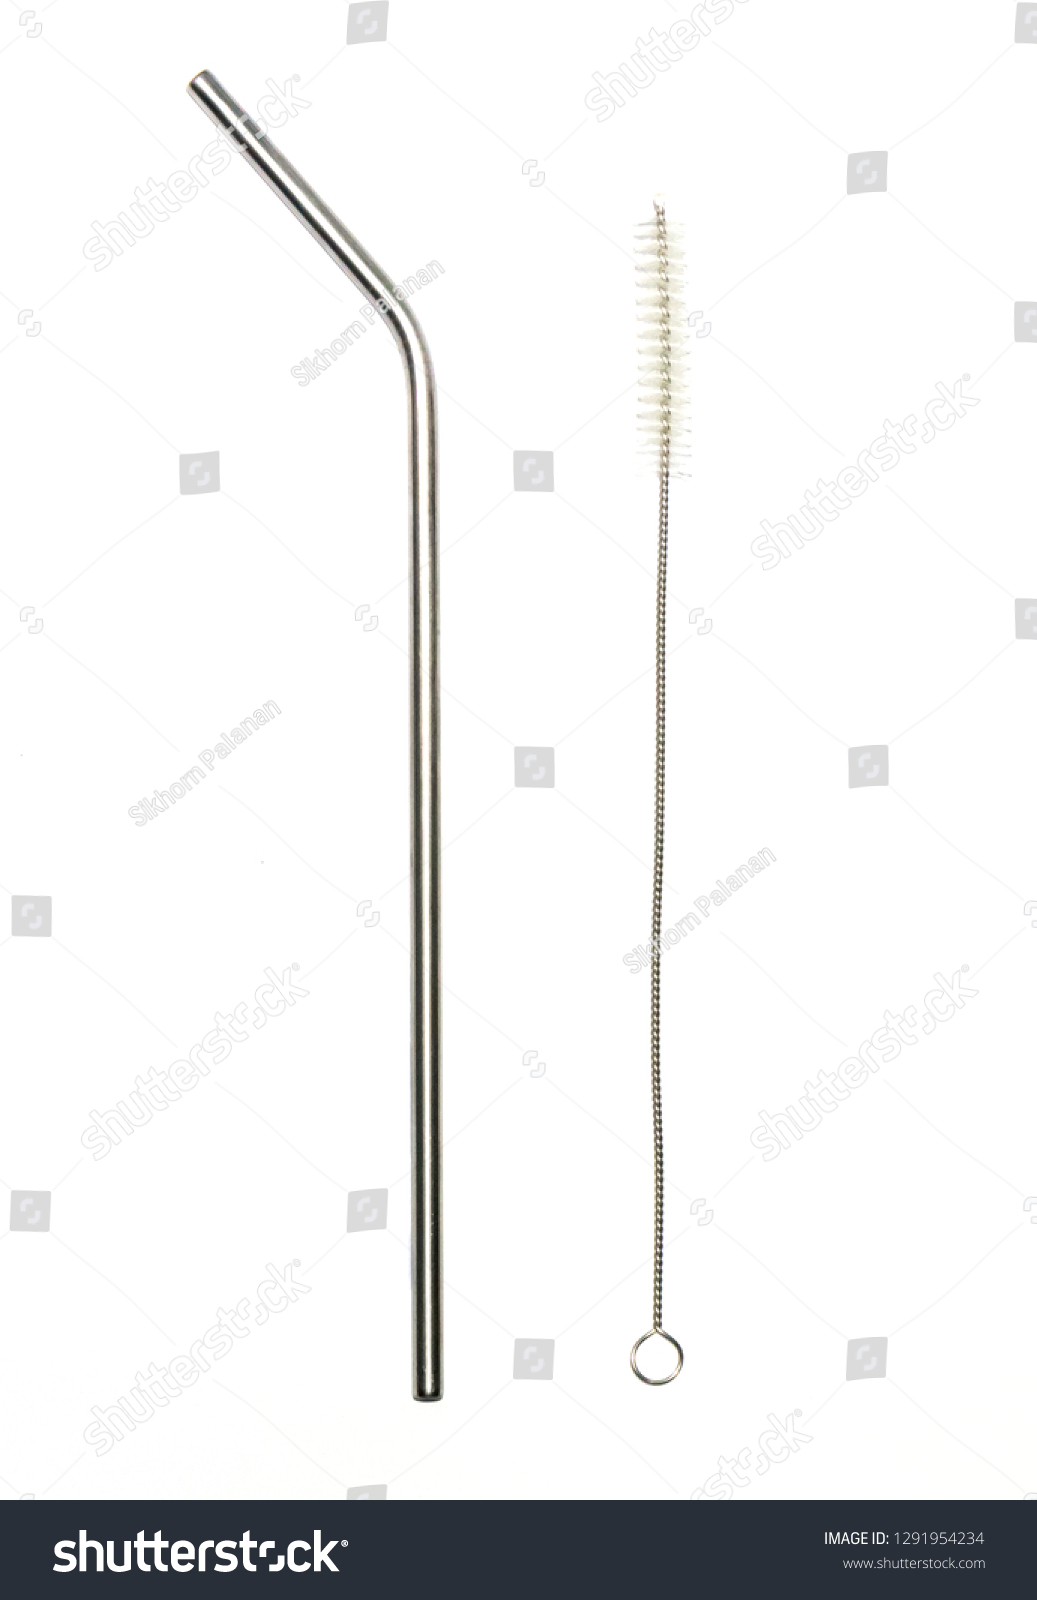 Stainless Steel Straw on white background metal drinking straw and Suction brush #1291954234